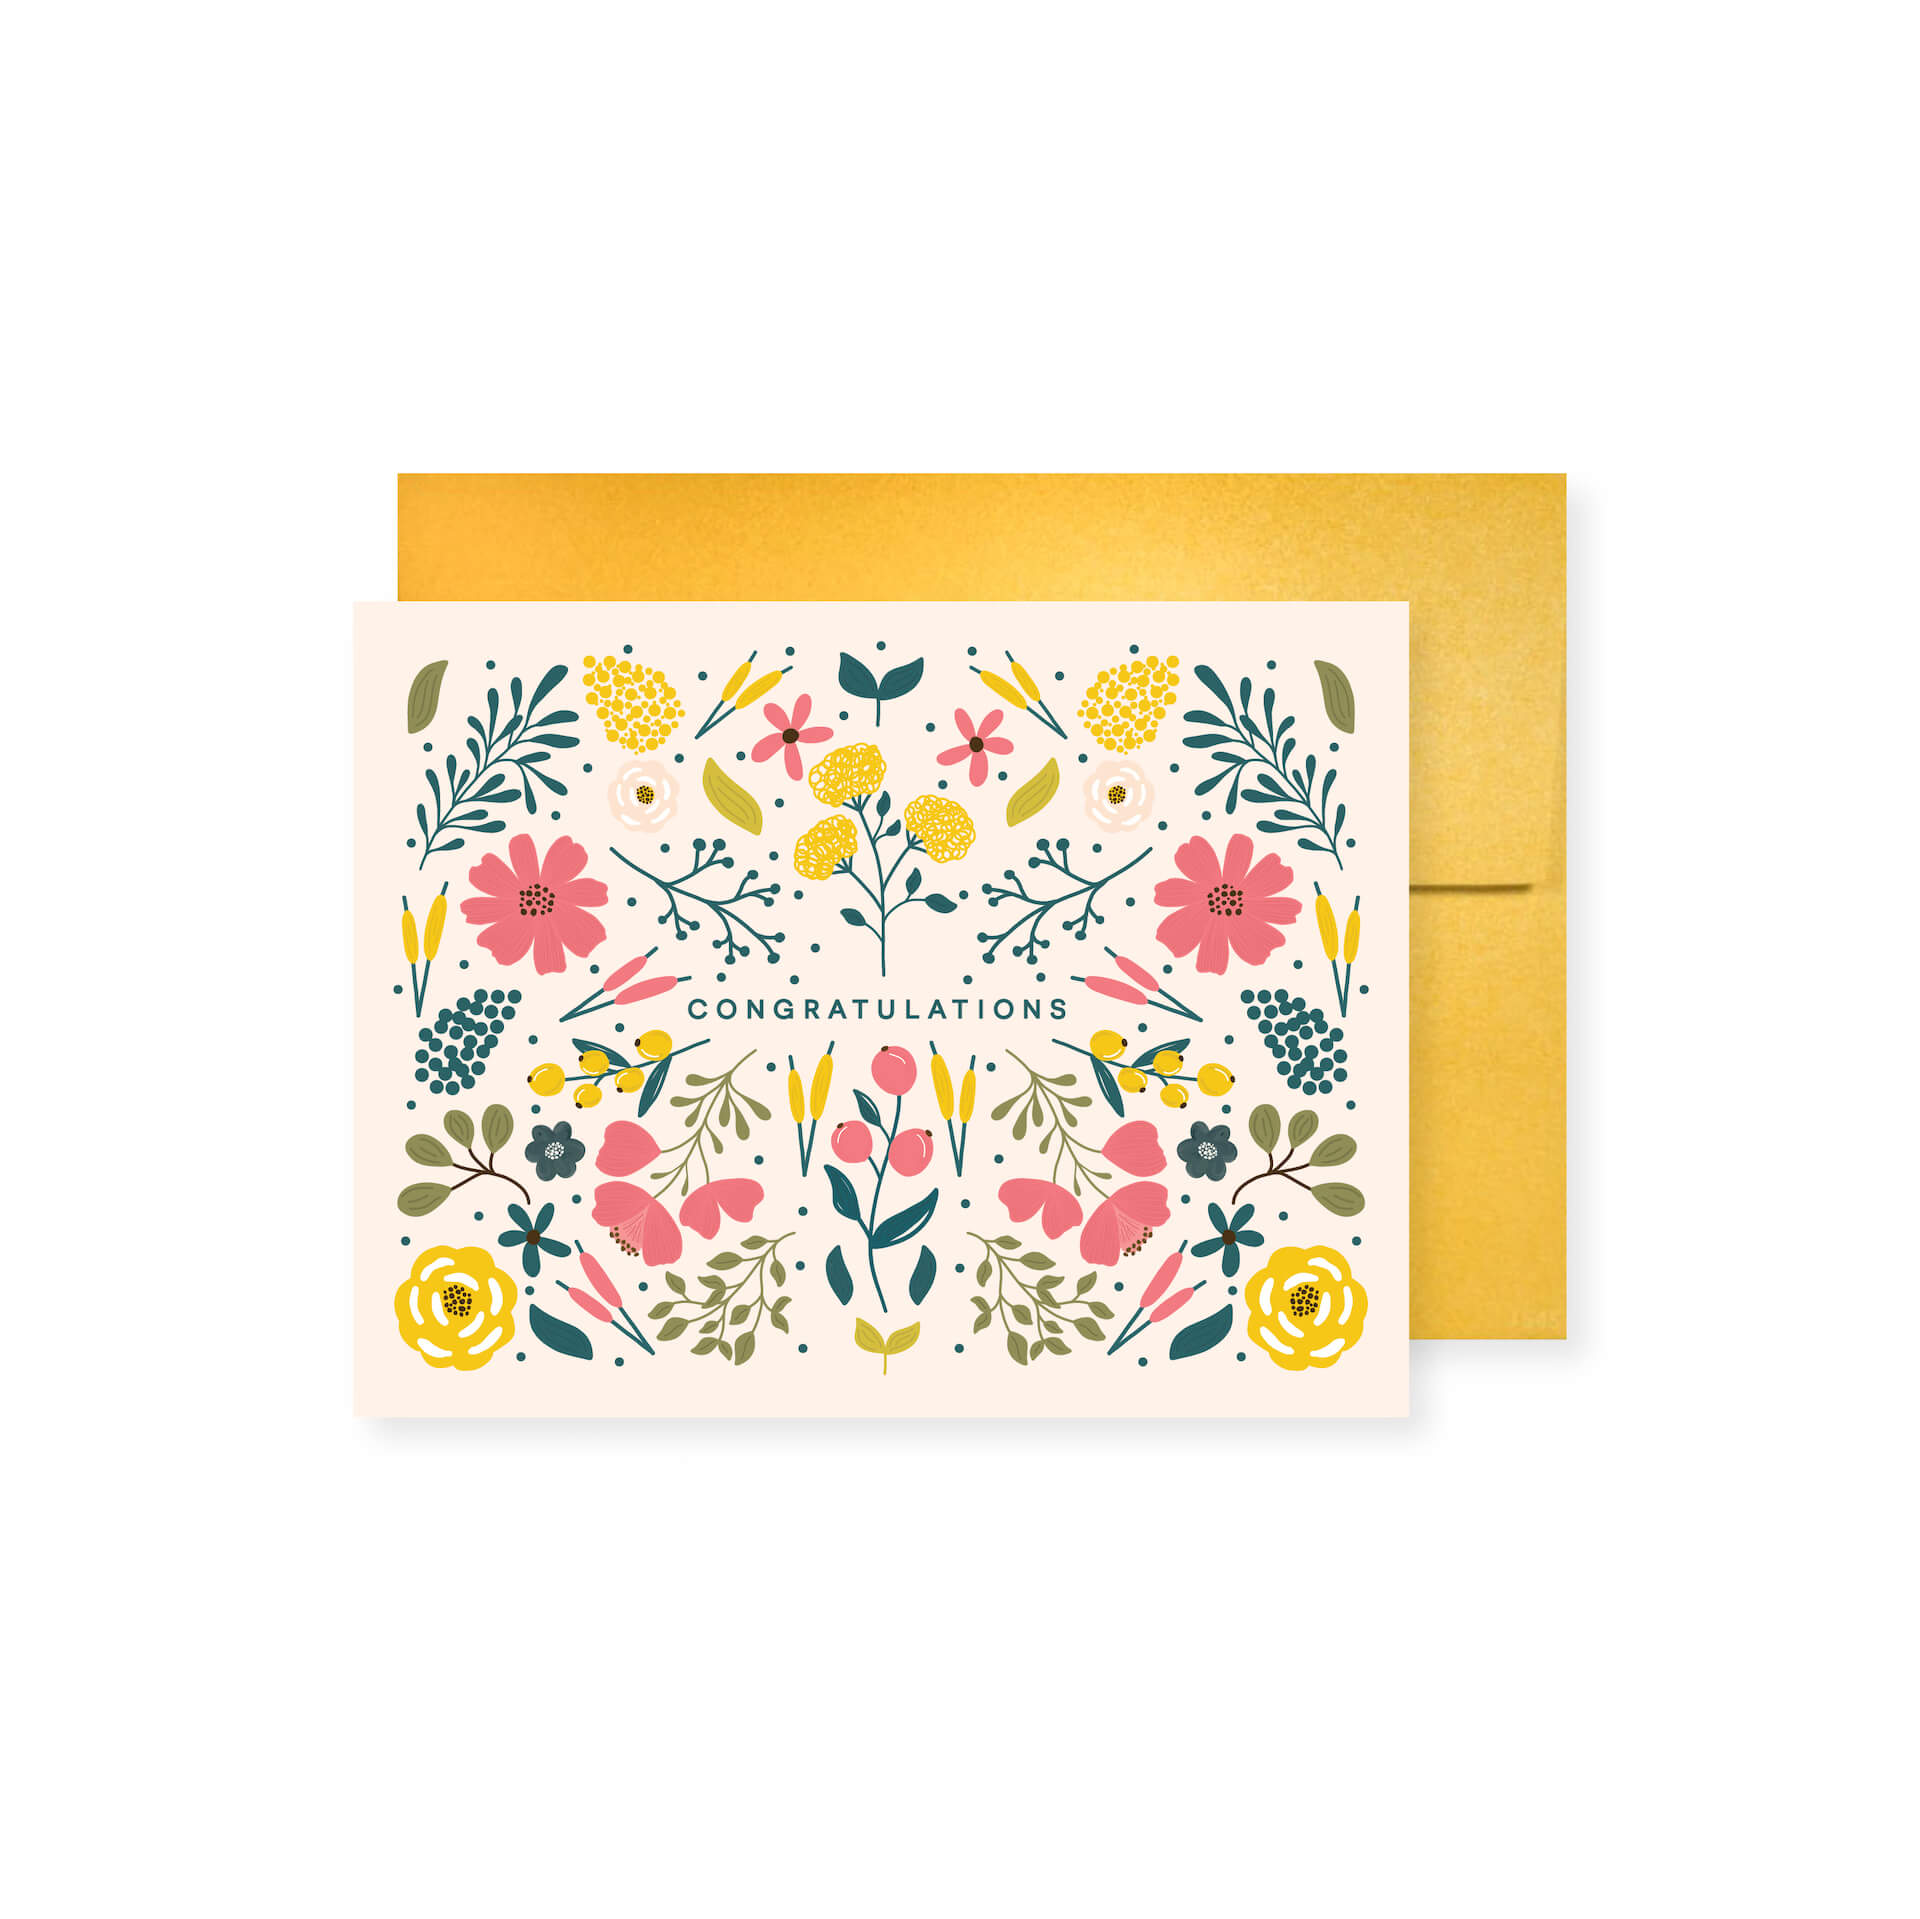 Pinkle & Lily Congrats Card-01.jpg